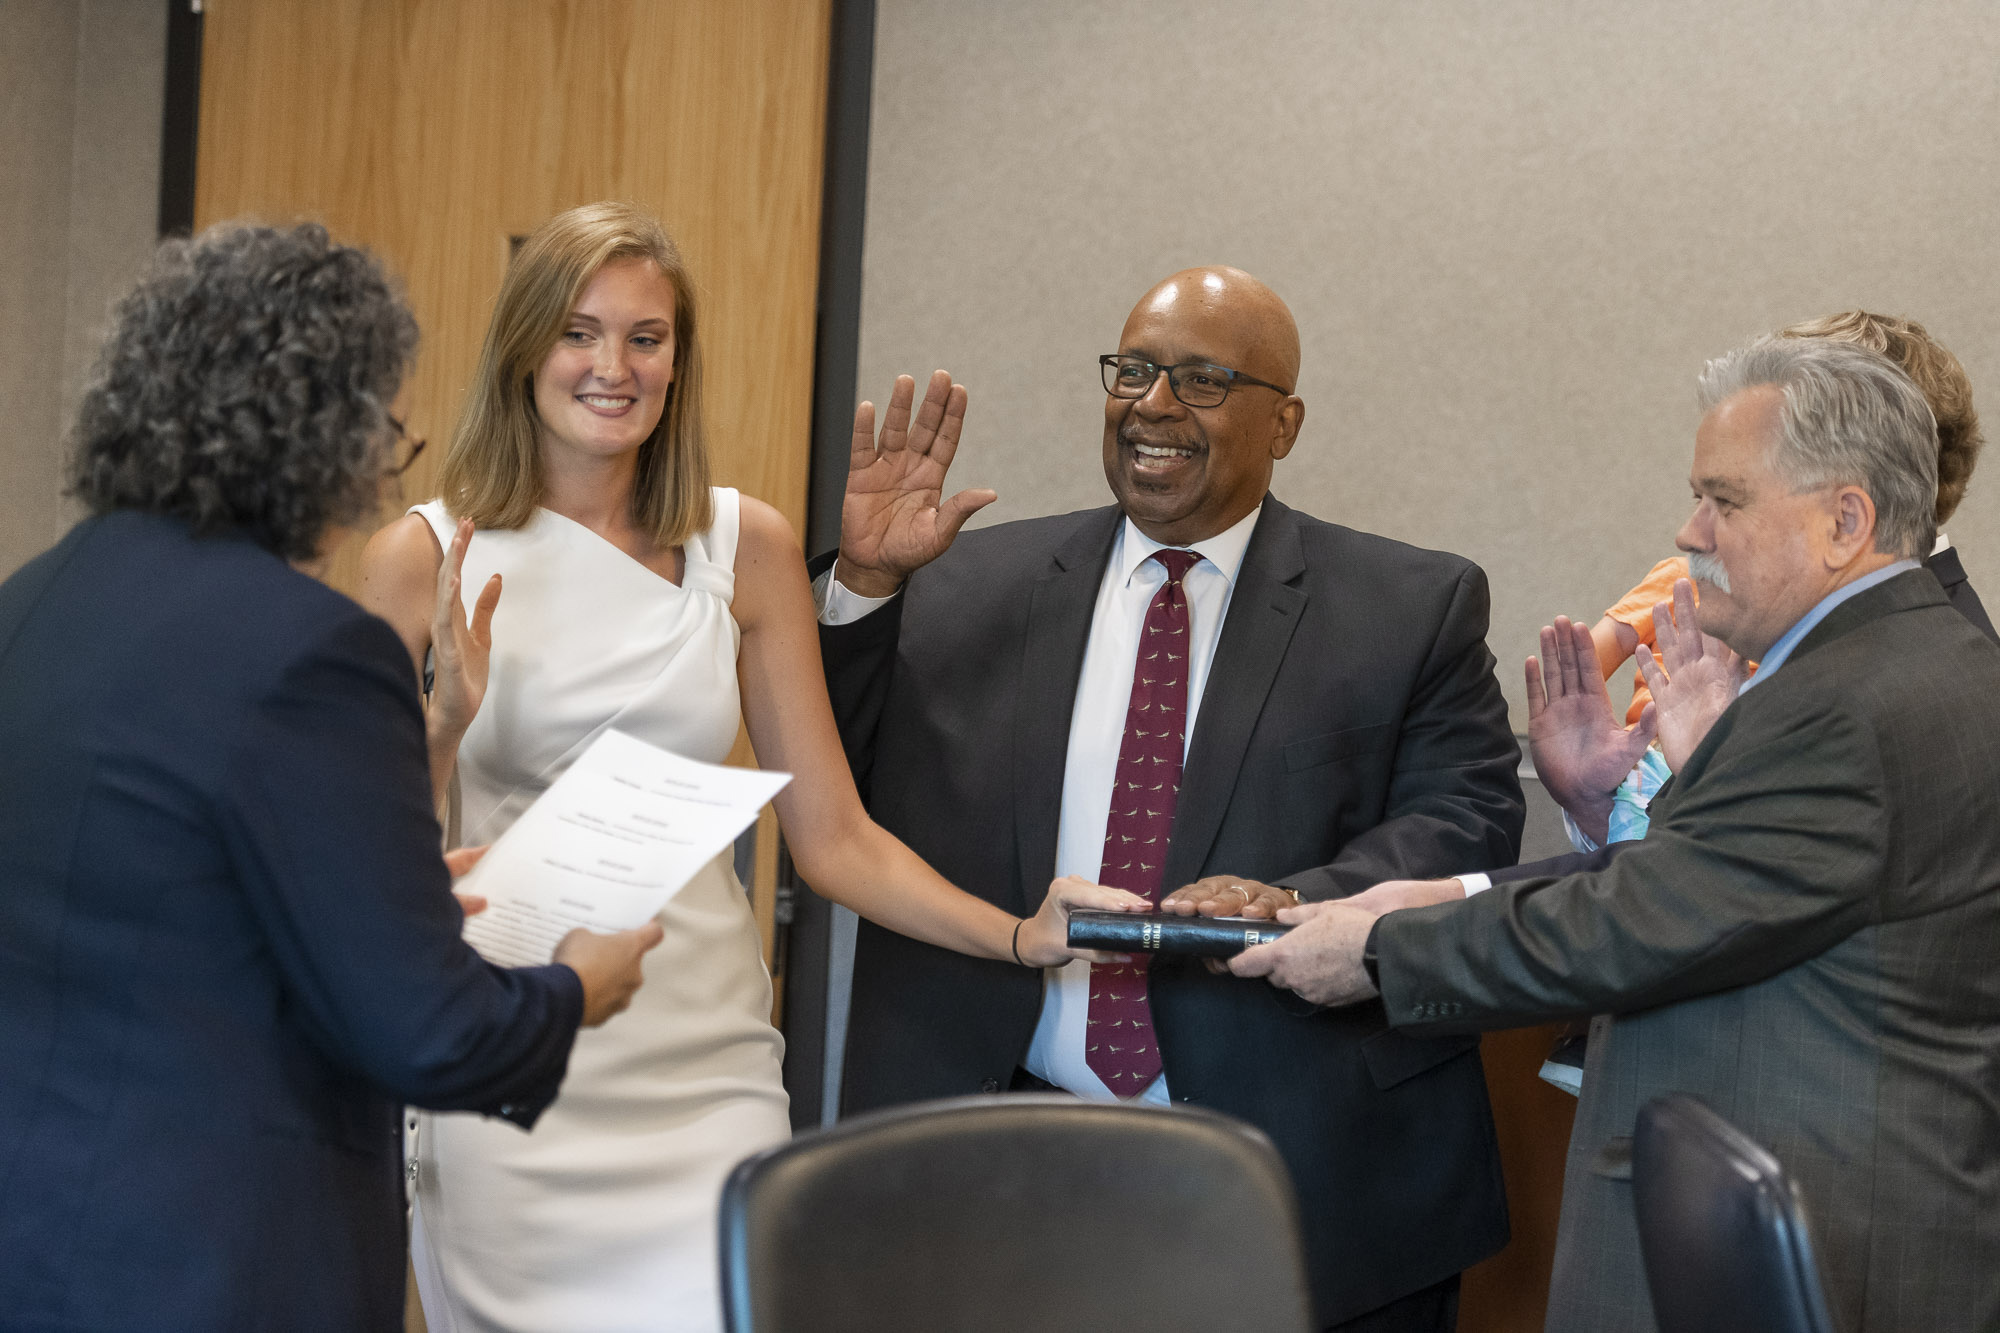 From left JCC student trustee Heather Choate; Dr. Oliver Johnson; and Hank Daniels take their oaths of office.